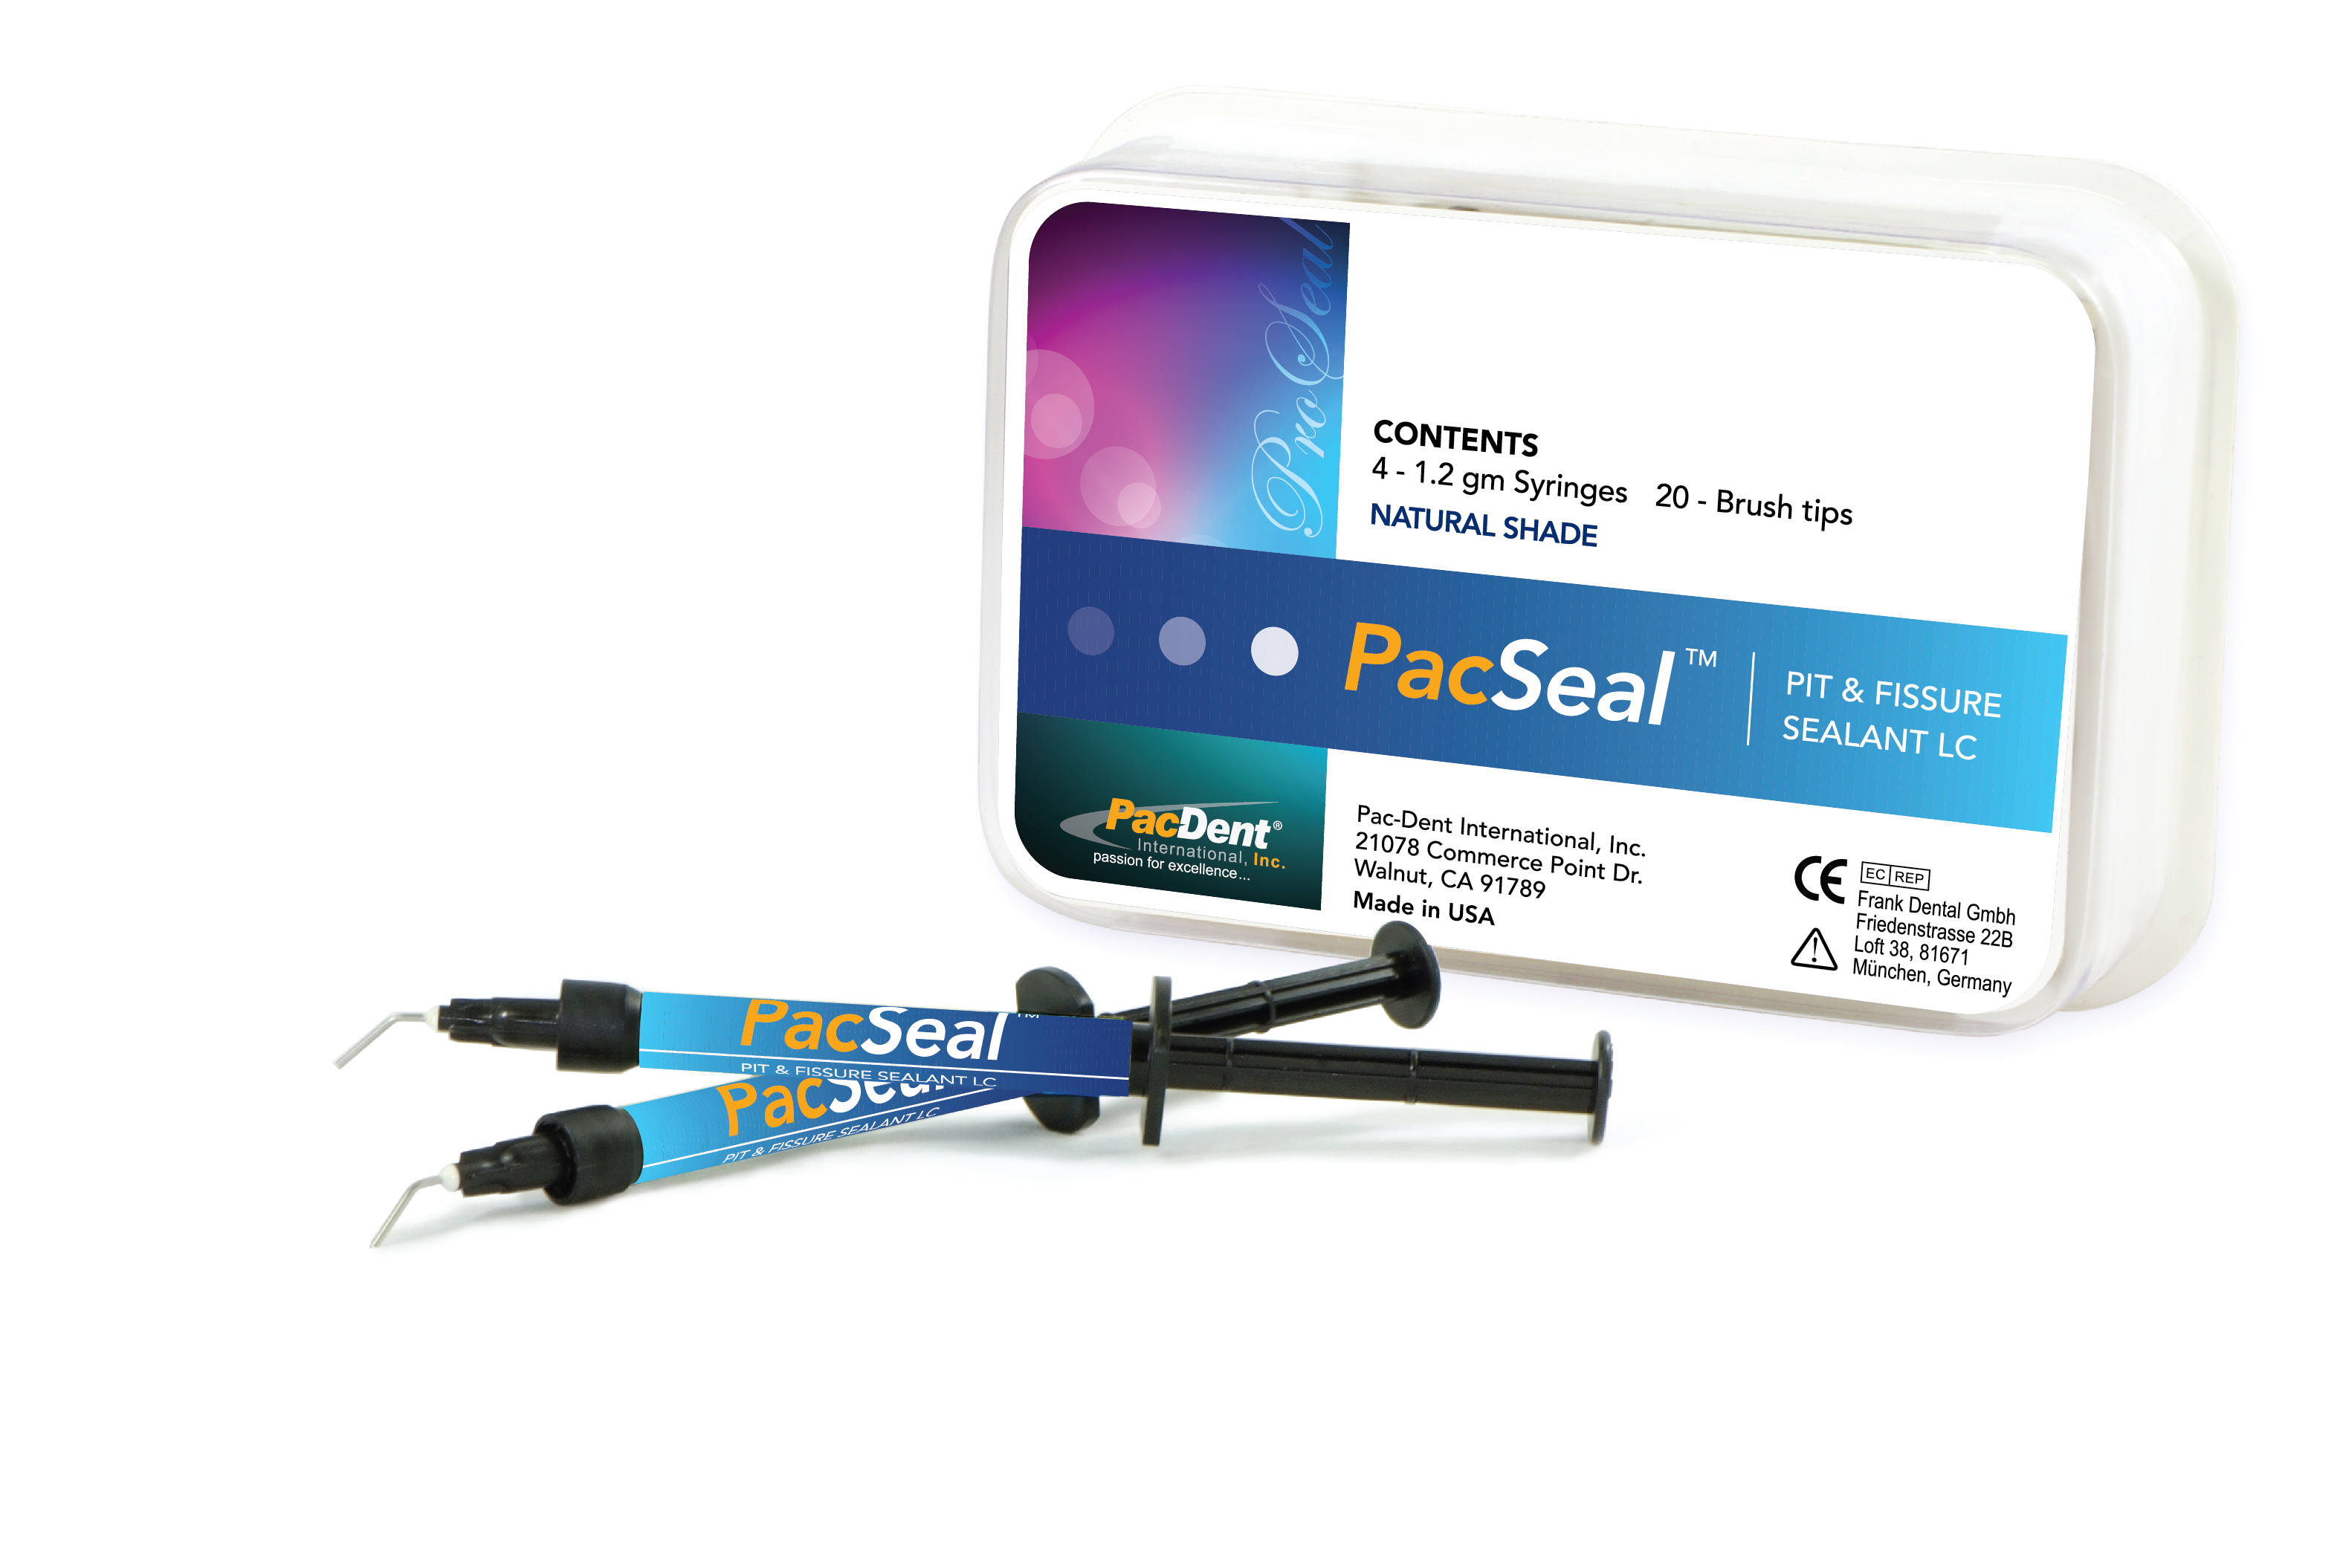 PacSeal Pit & Fissure Sealant